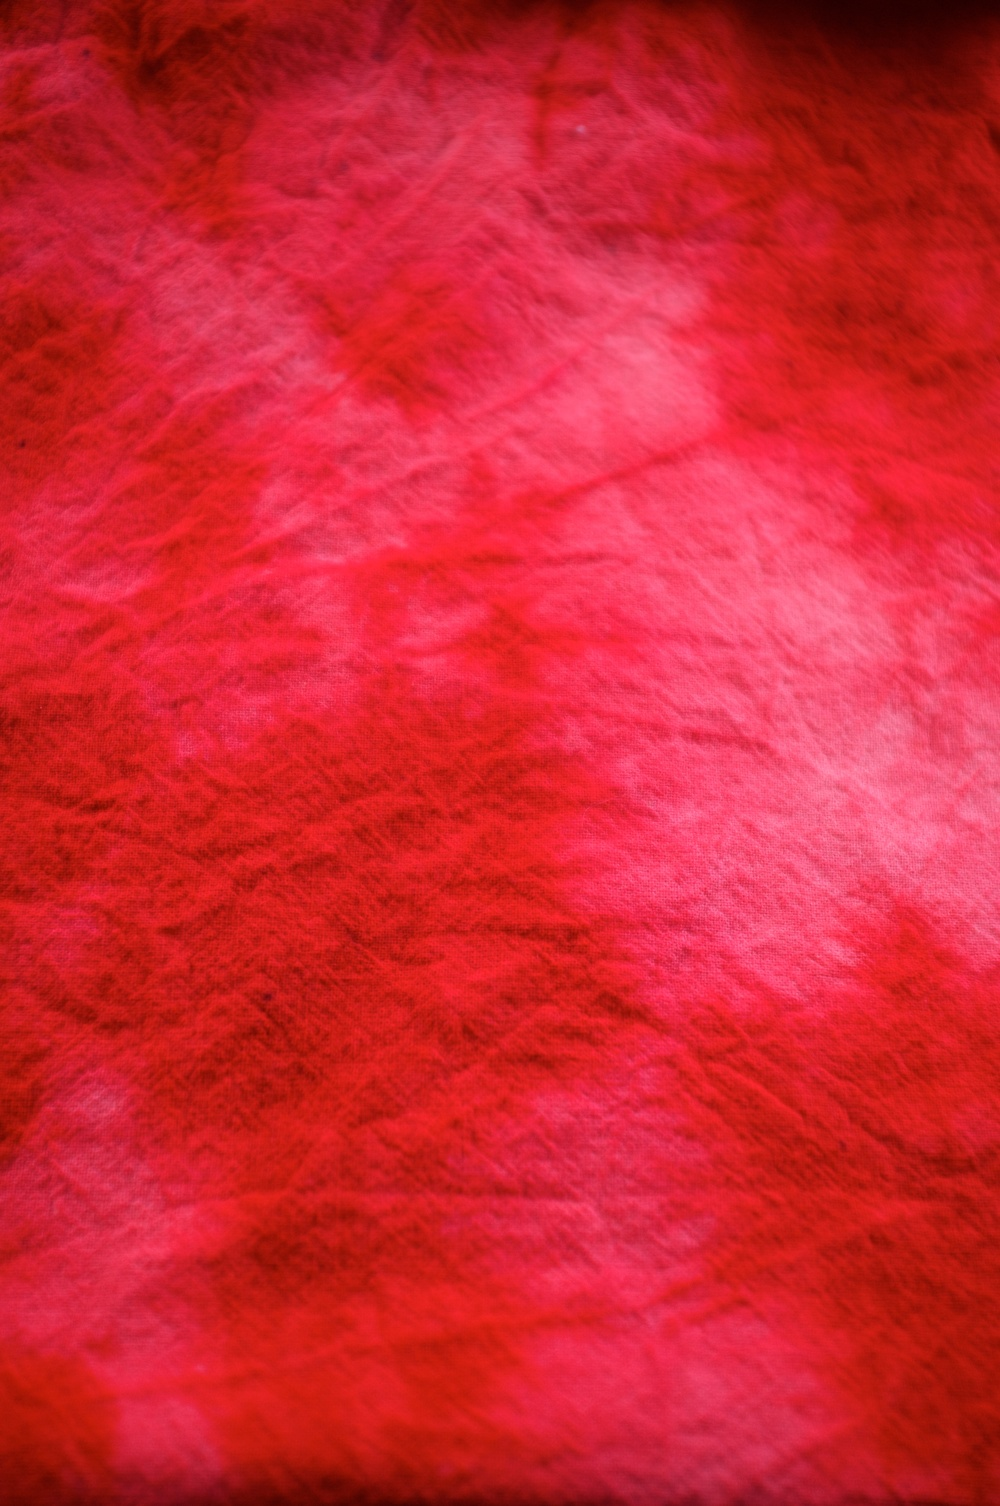 Tenugui Thin Red Mist 1.jpg